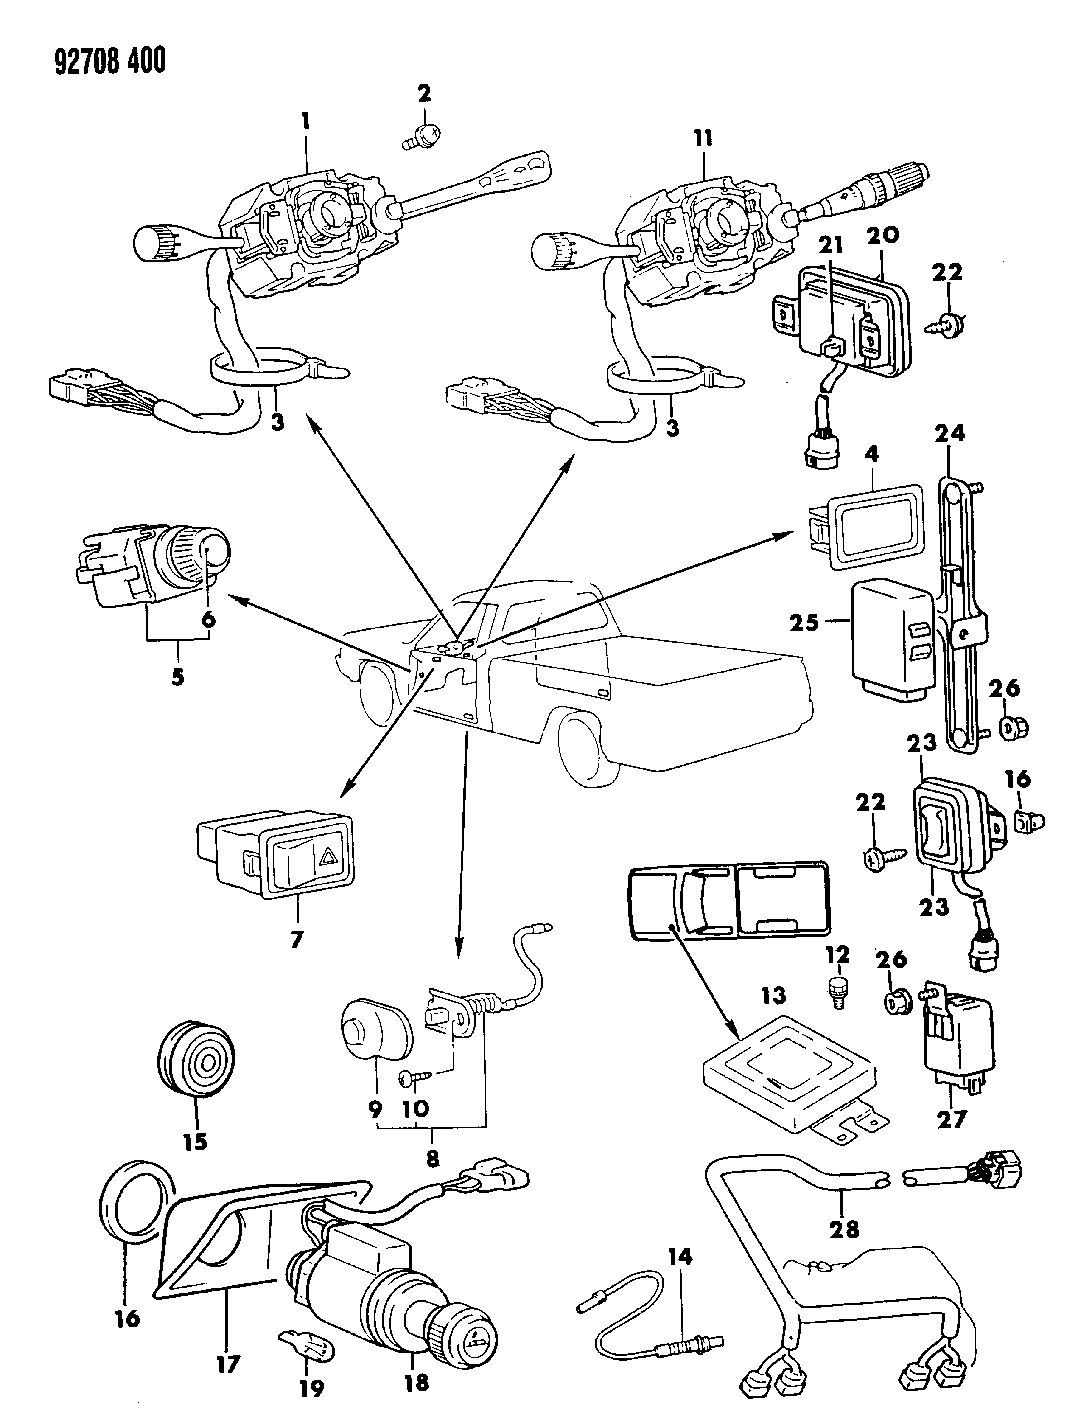 1992 Dodge Ram 50 Switches & Electrical Controls